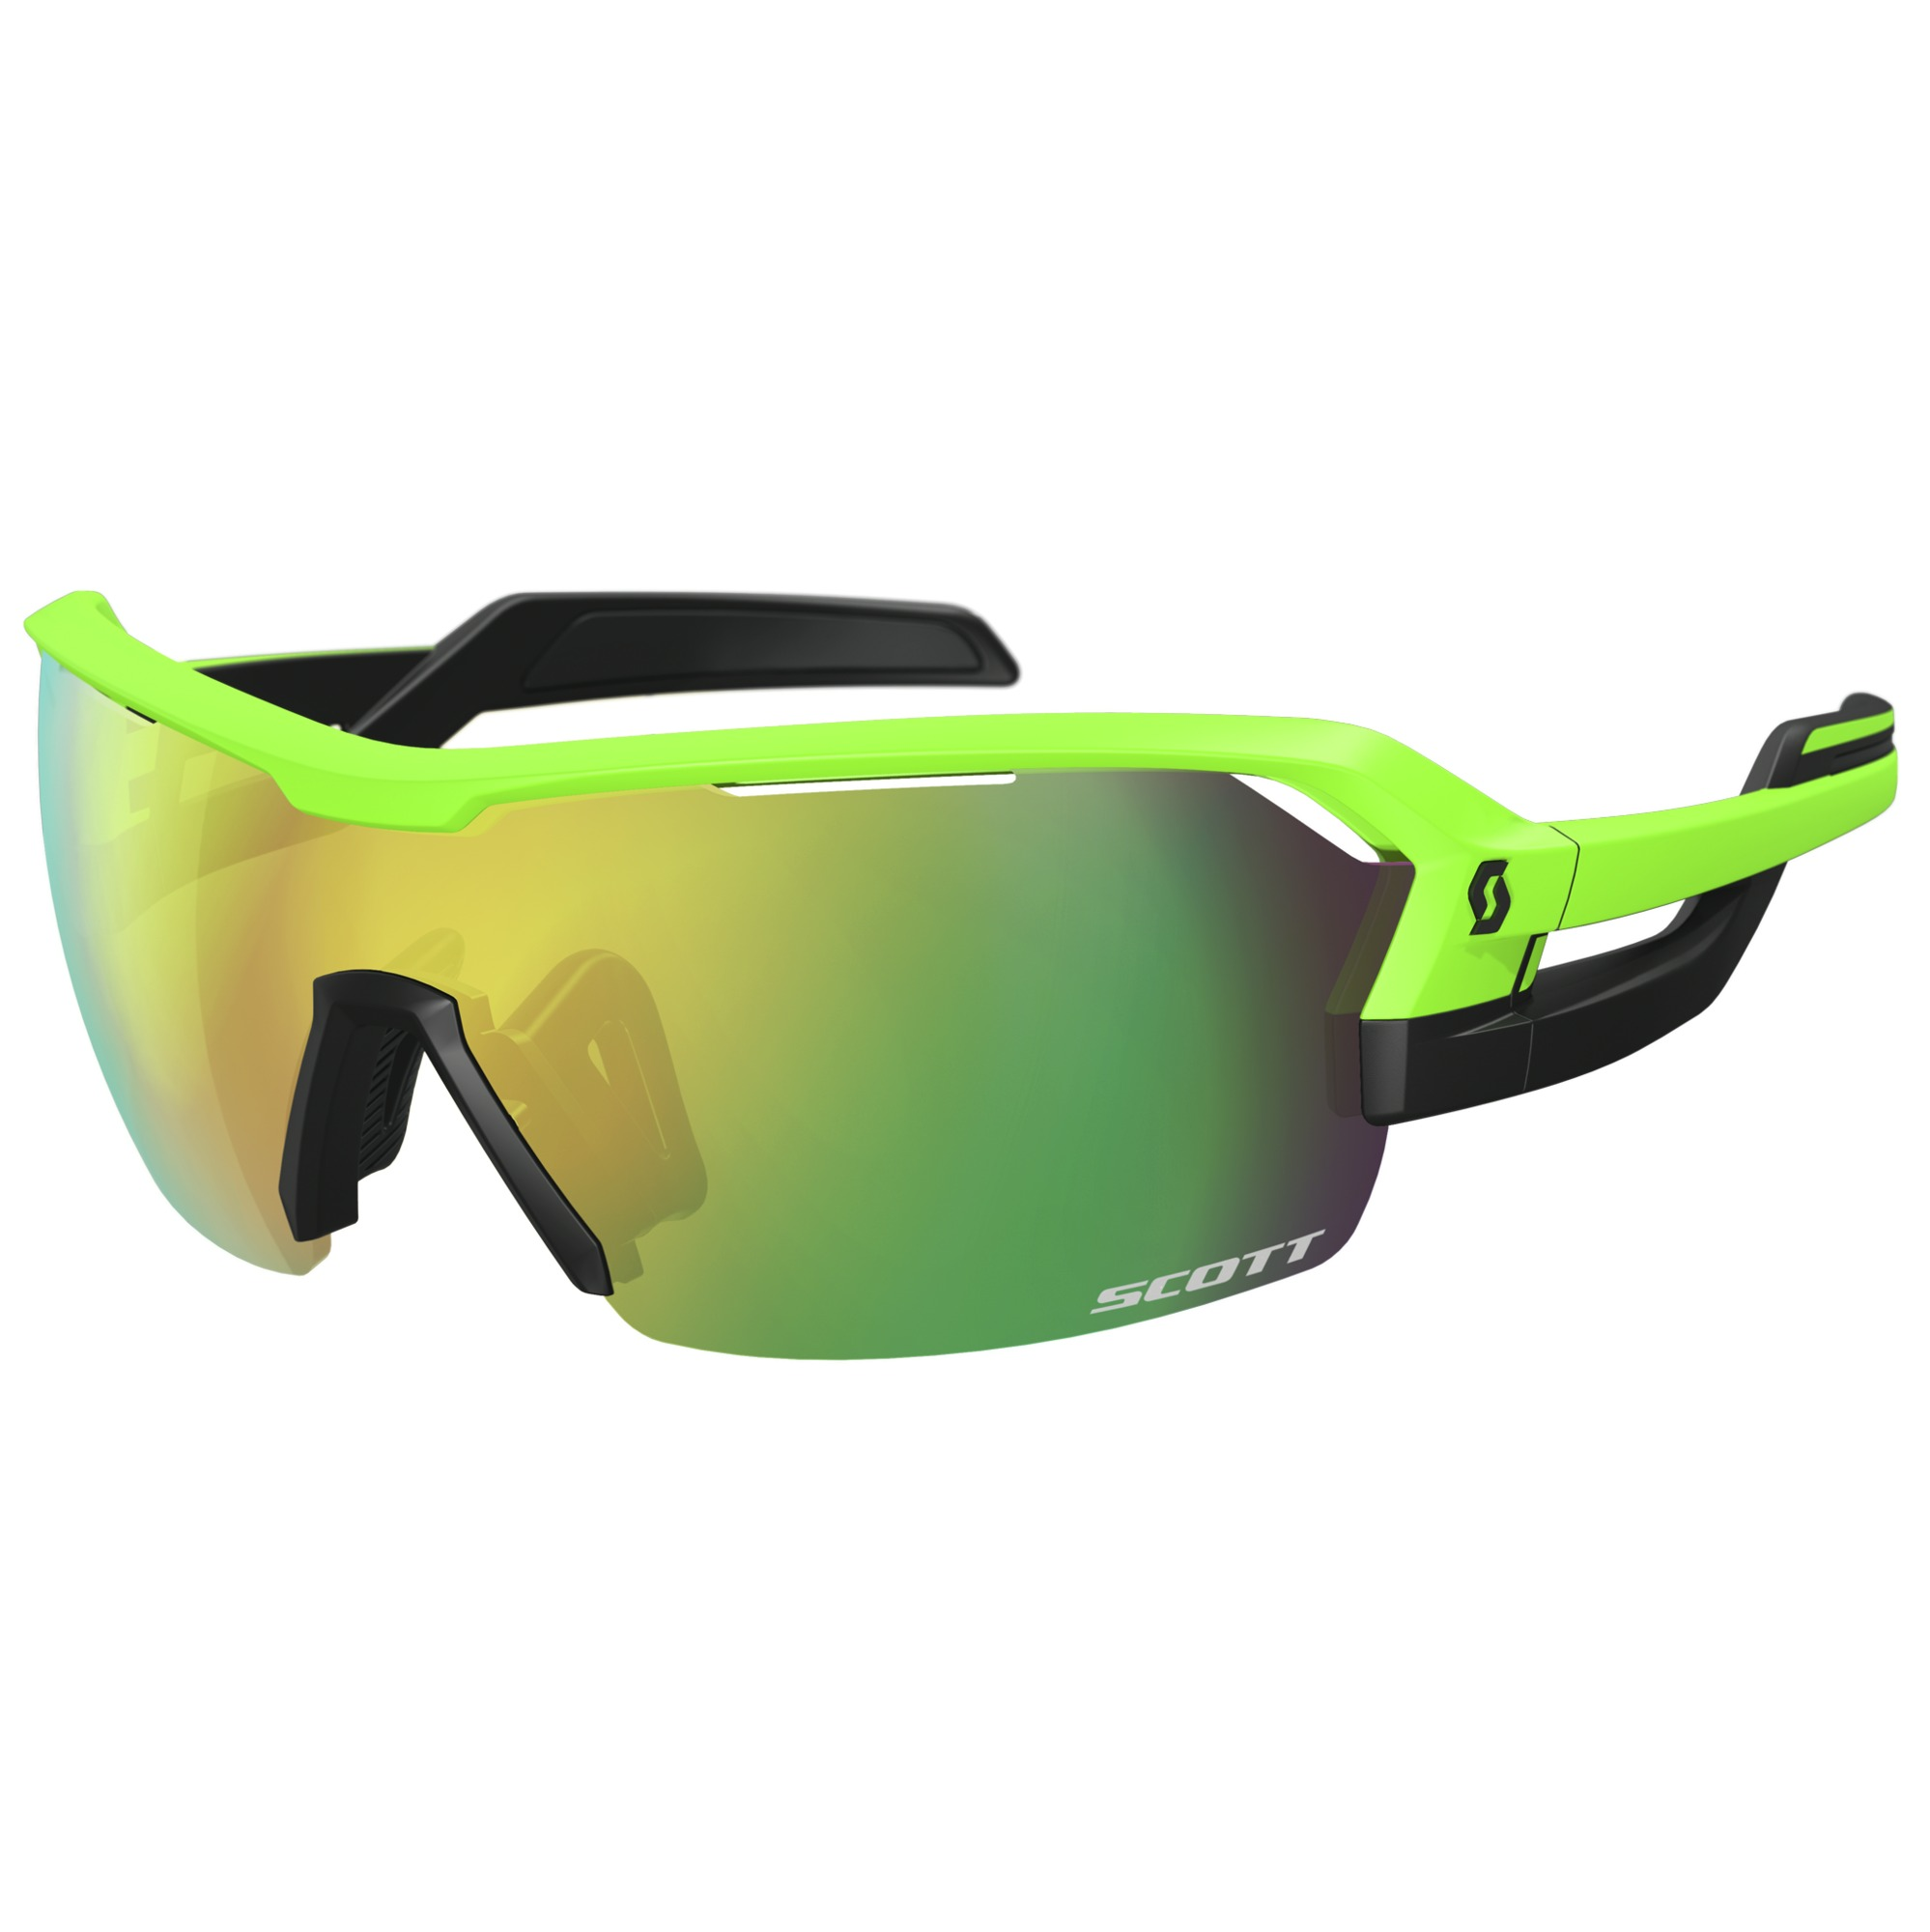 Scott Spur Sunglasses 7cX2z0J